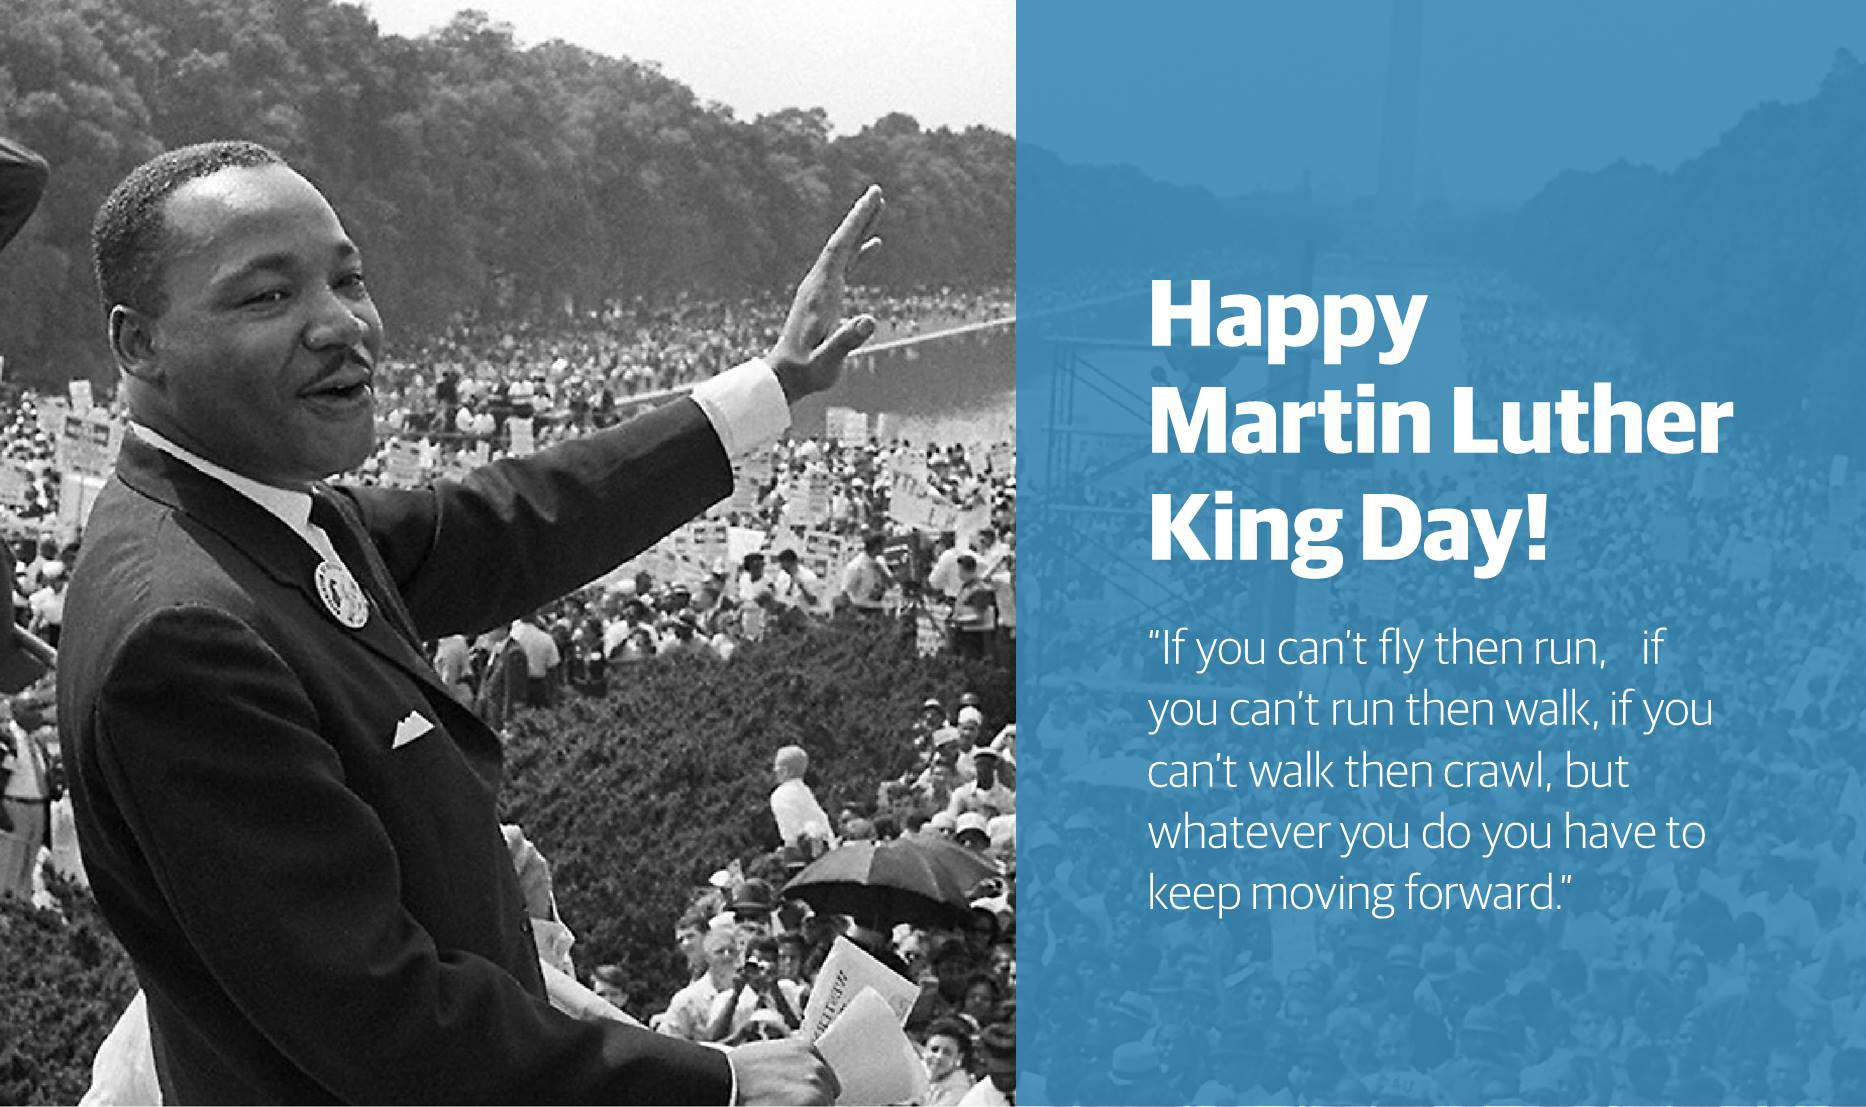 Martin Luther King, Jr. Day Wishes pics free download